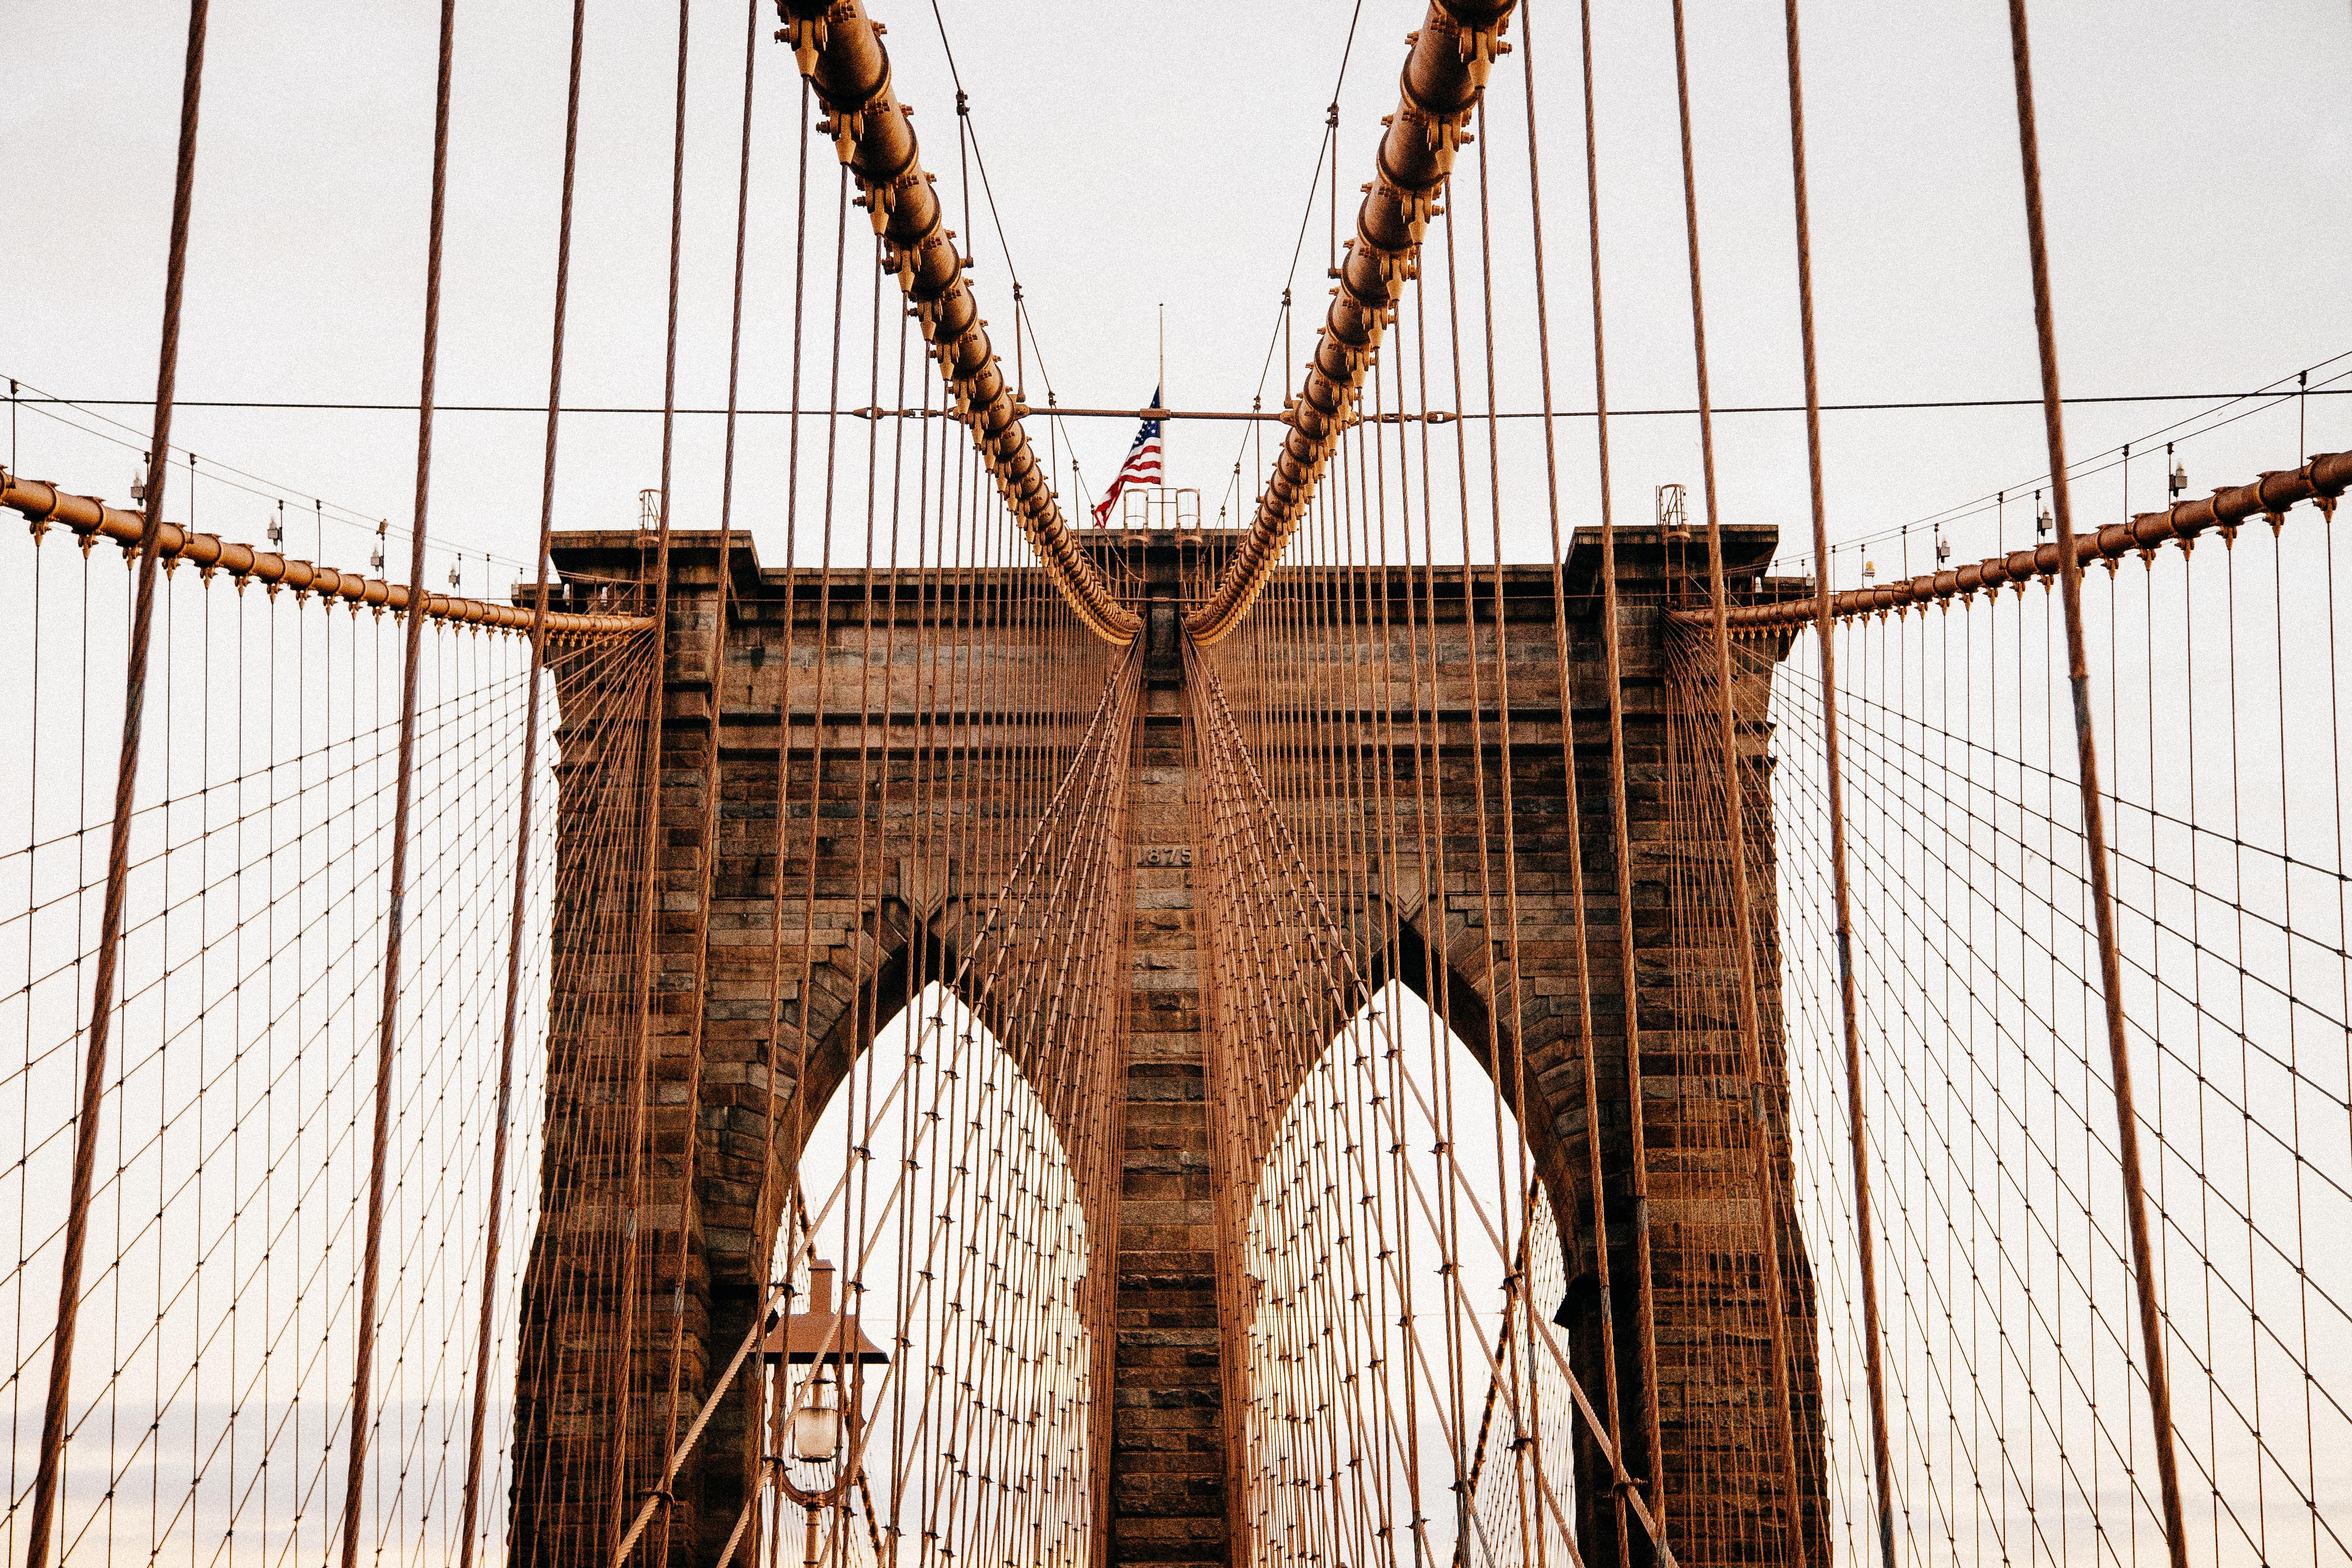 A look up at one of the towers on New York City's Brooklyn Bridge